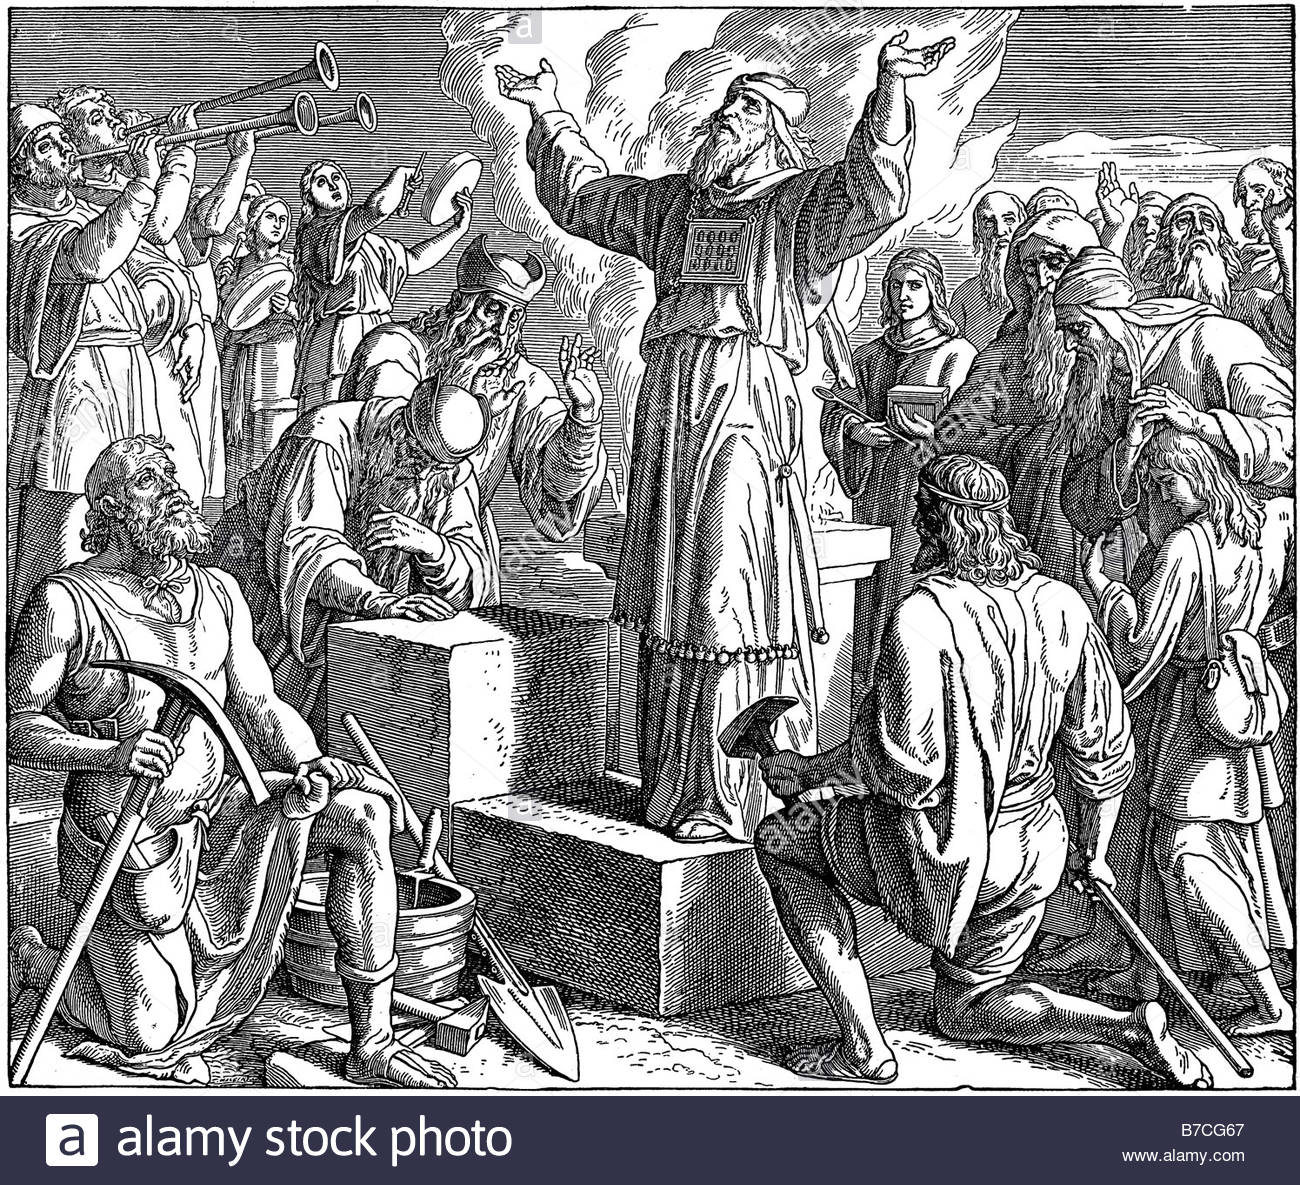 Do you think the pagan sailors were converted?